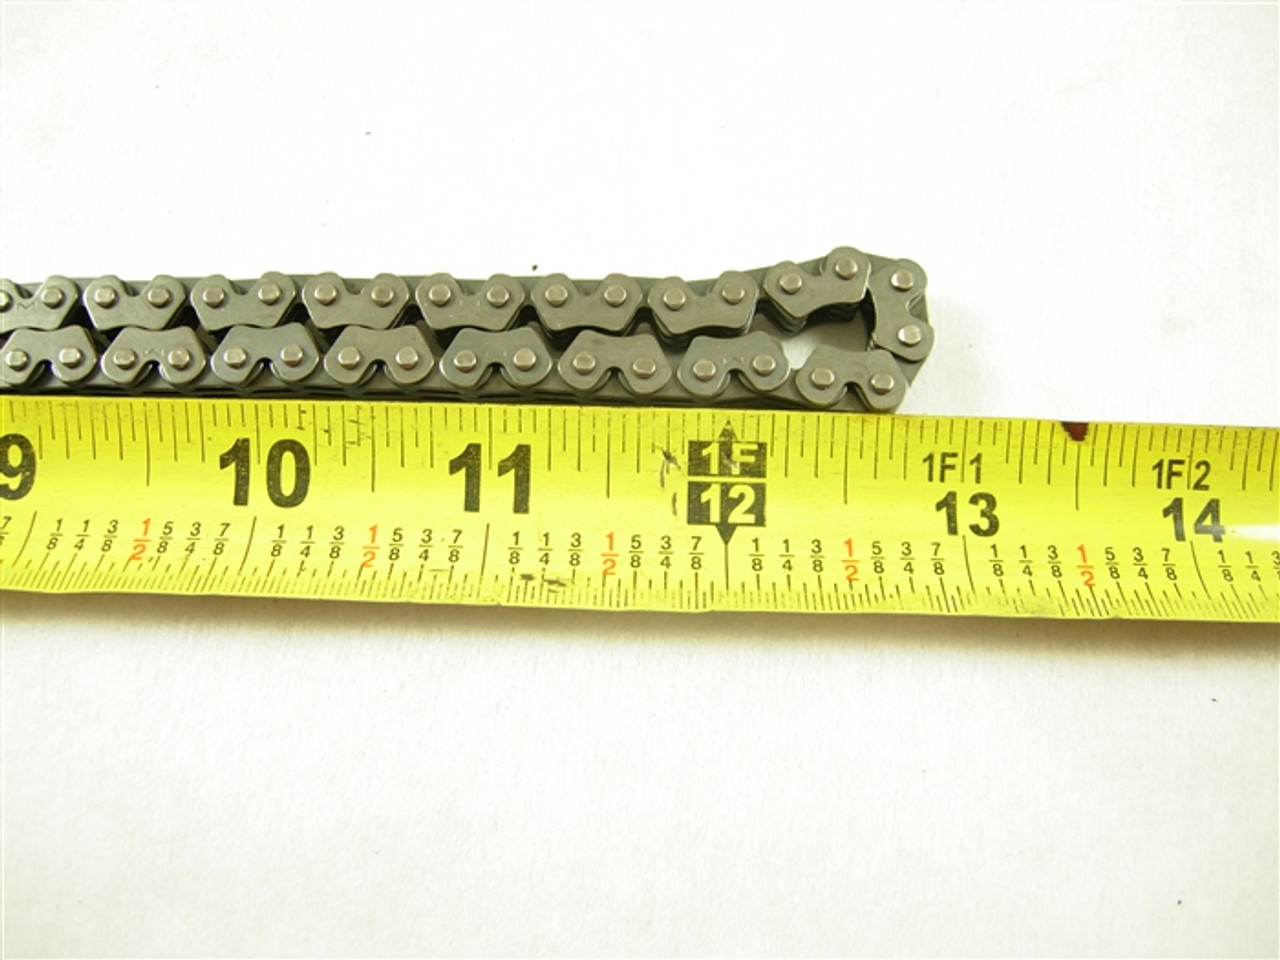 TIMING CHAIN 10313-A18-7